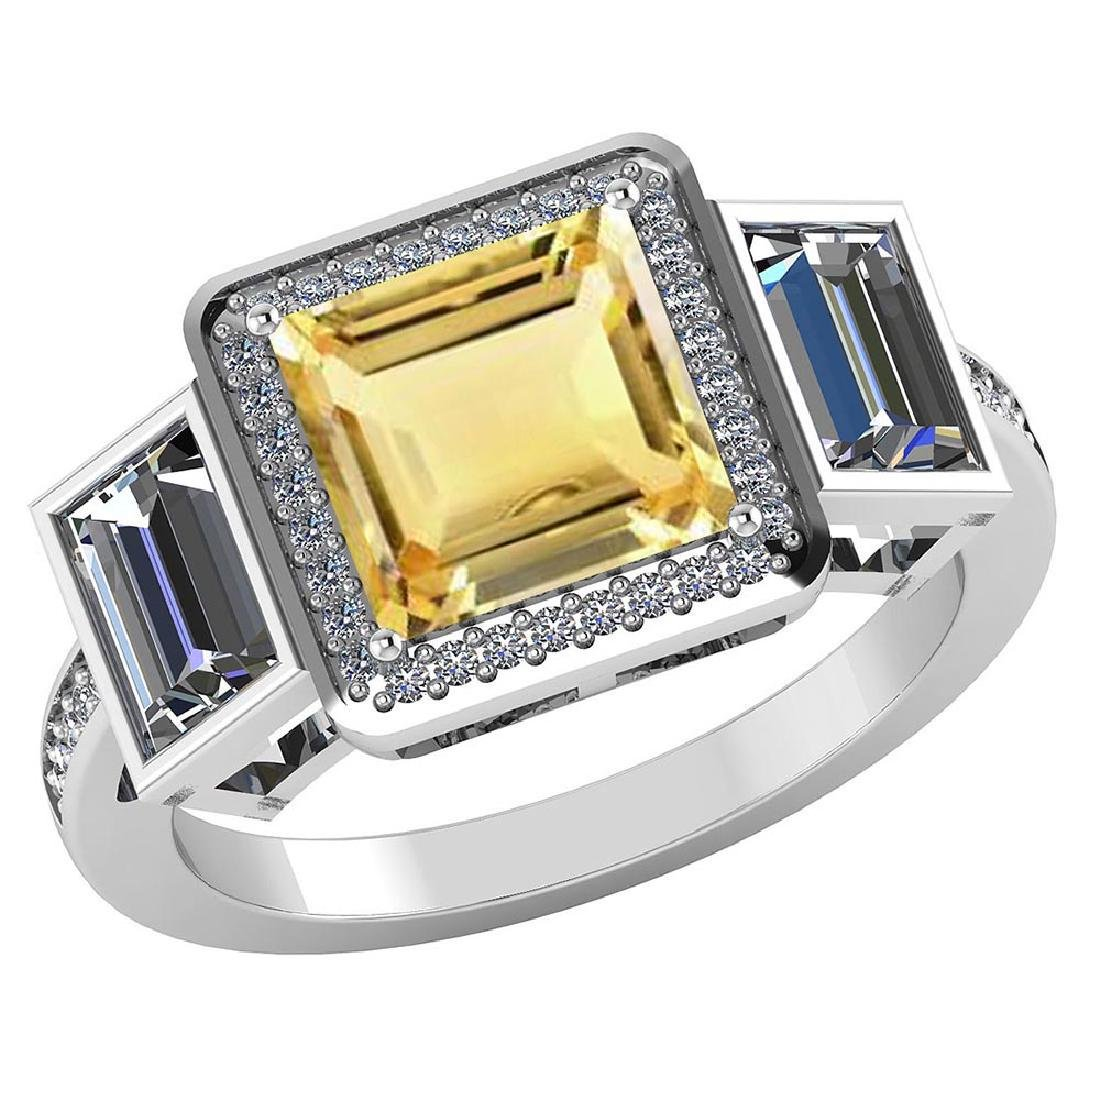 Certified 2.45 CTW Genuine Citrine And Diamond 14K Whit